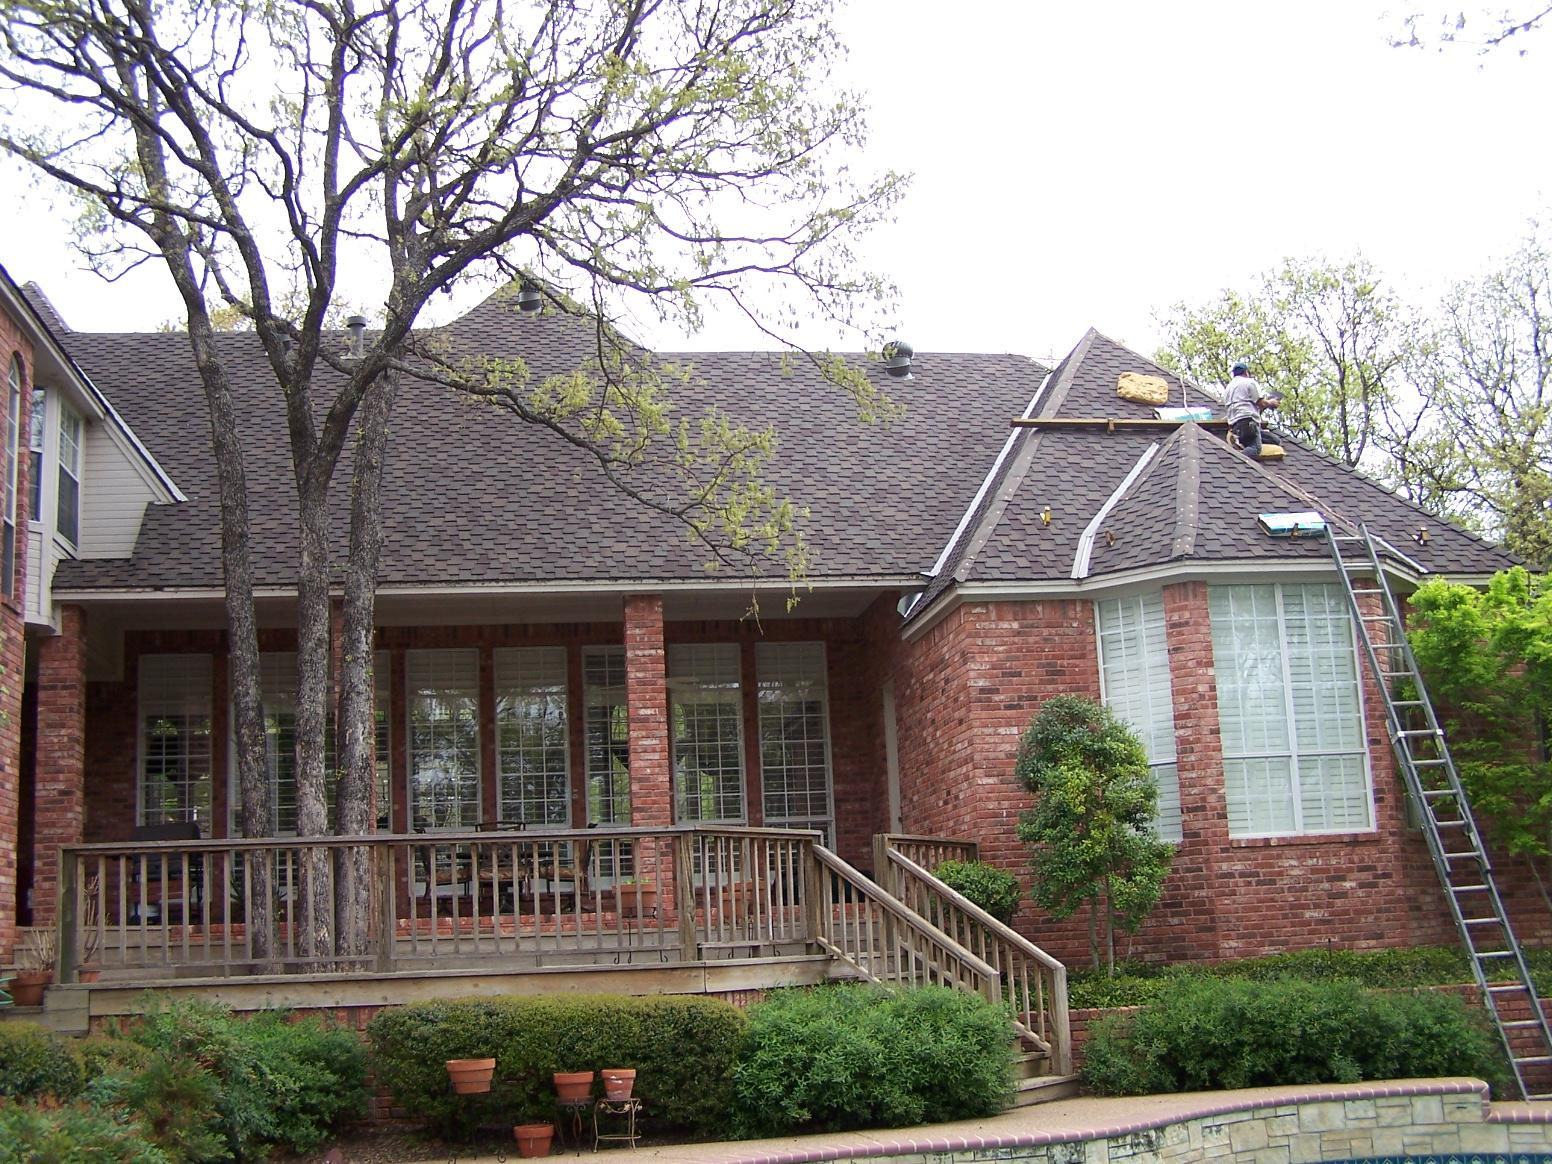 Roof Replacement in Colleyville, TX - After Photo